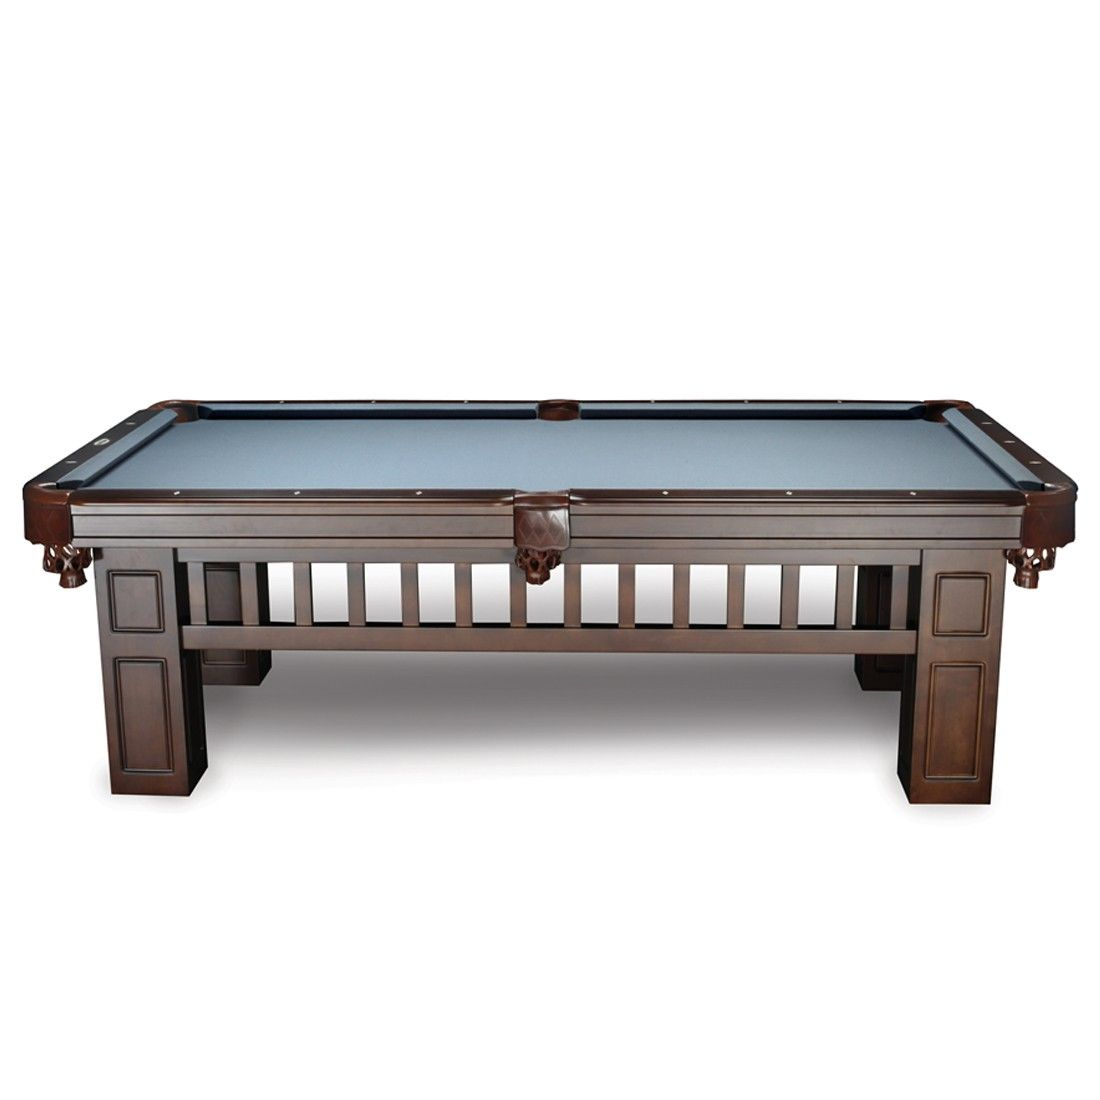 Imperial Larkspur Pool Table